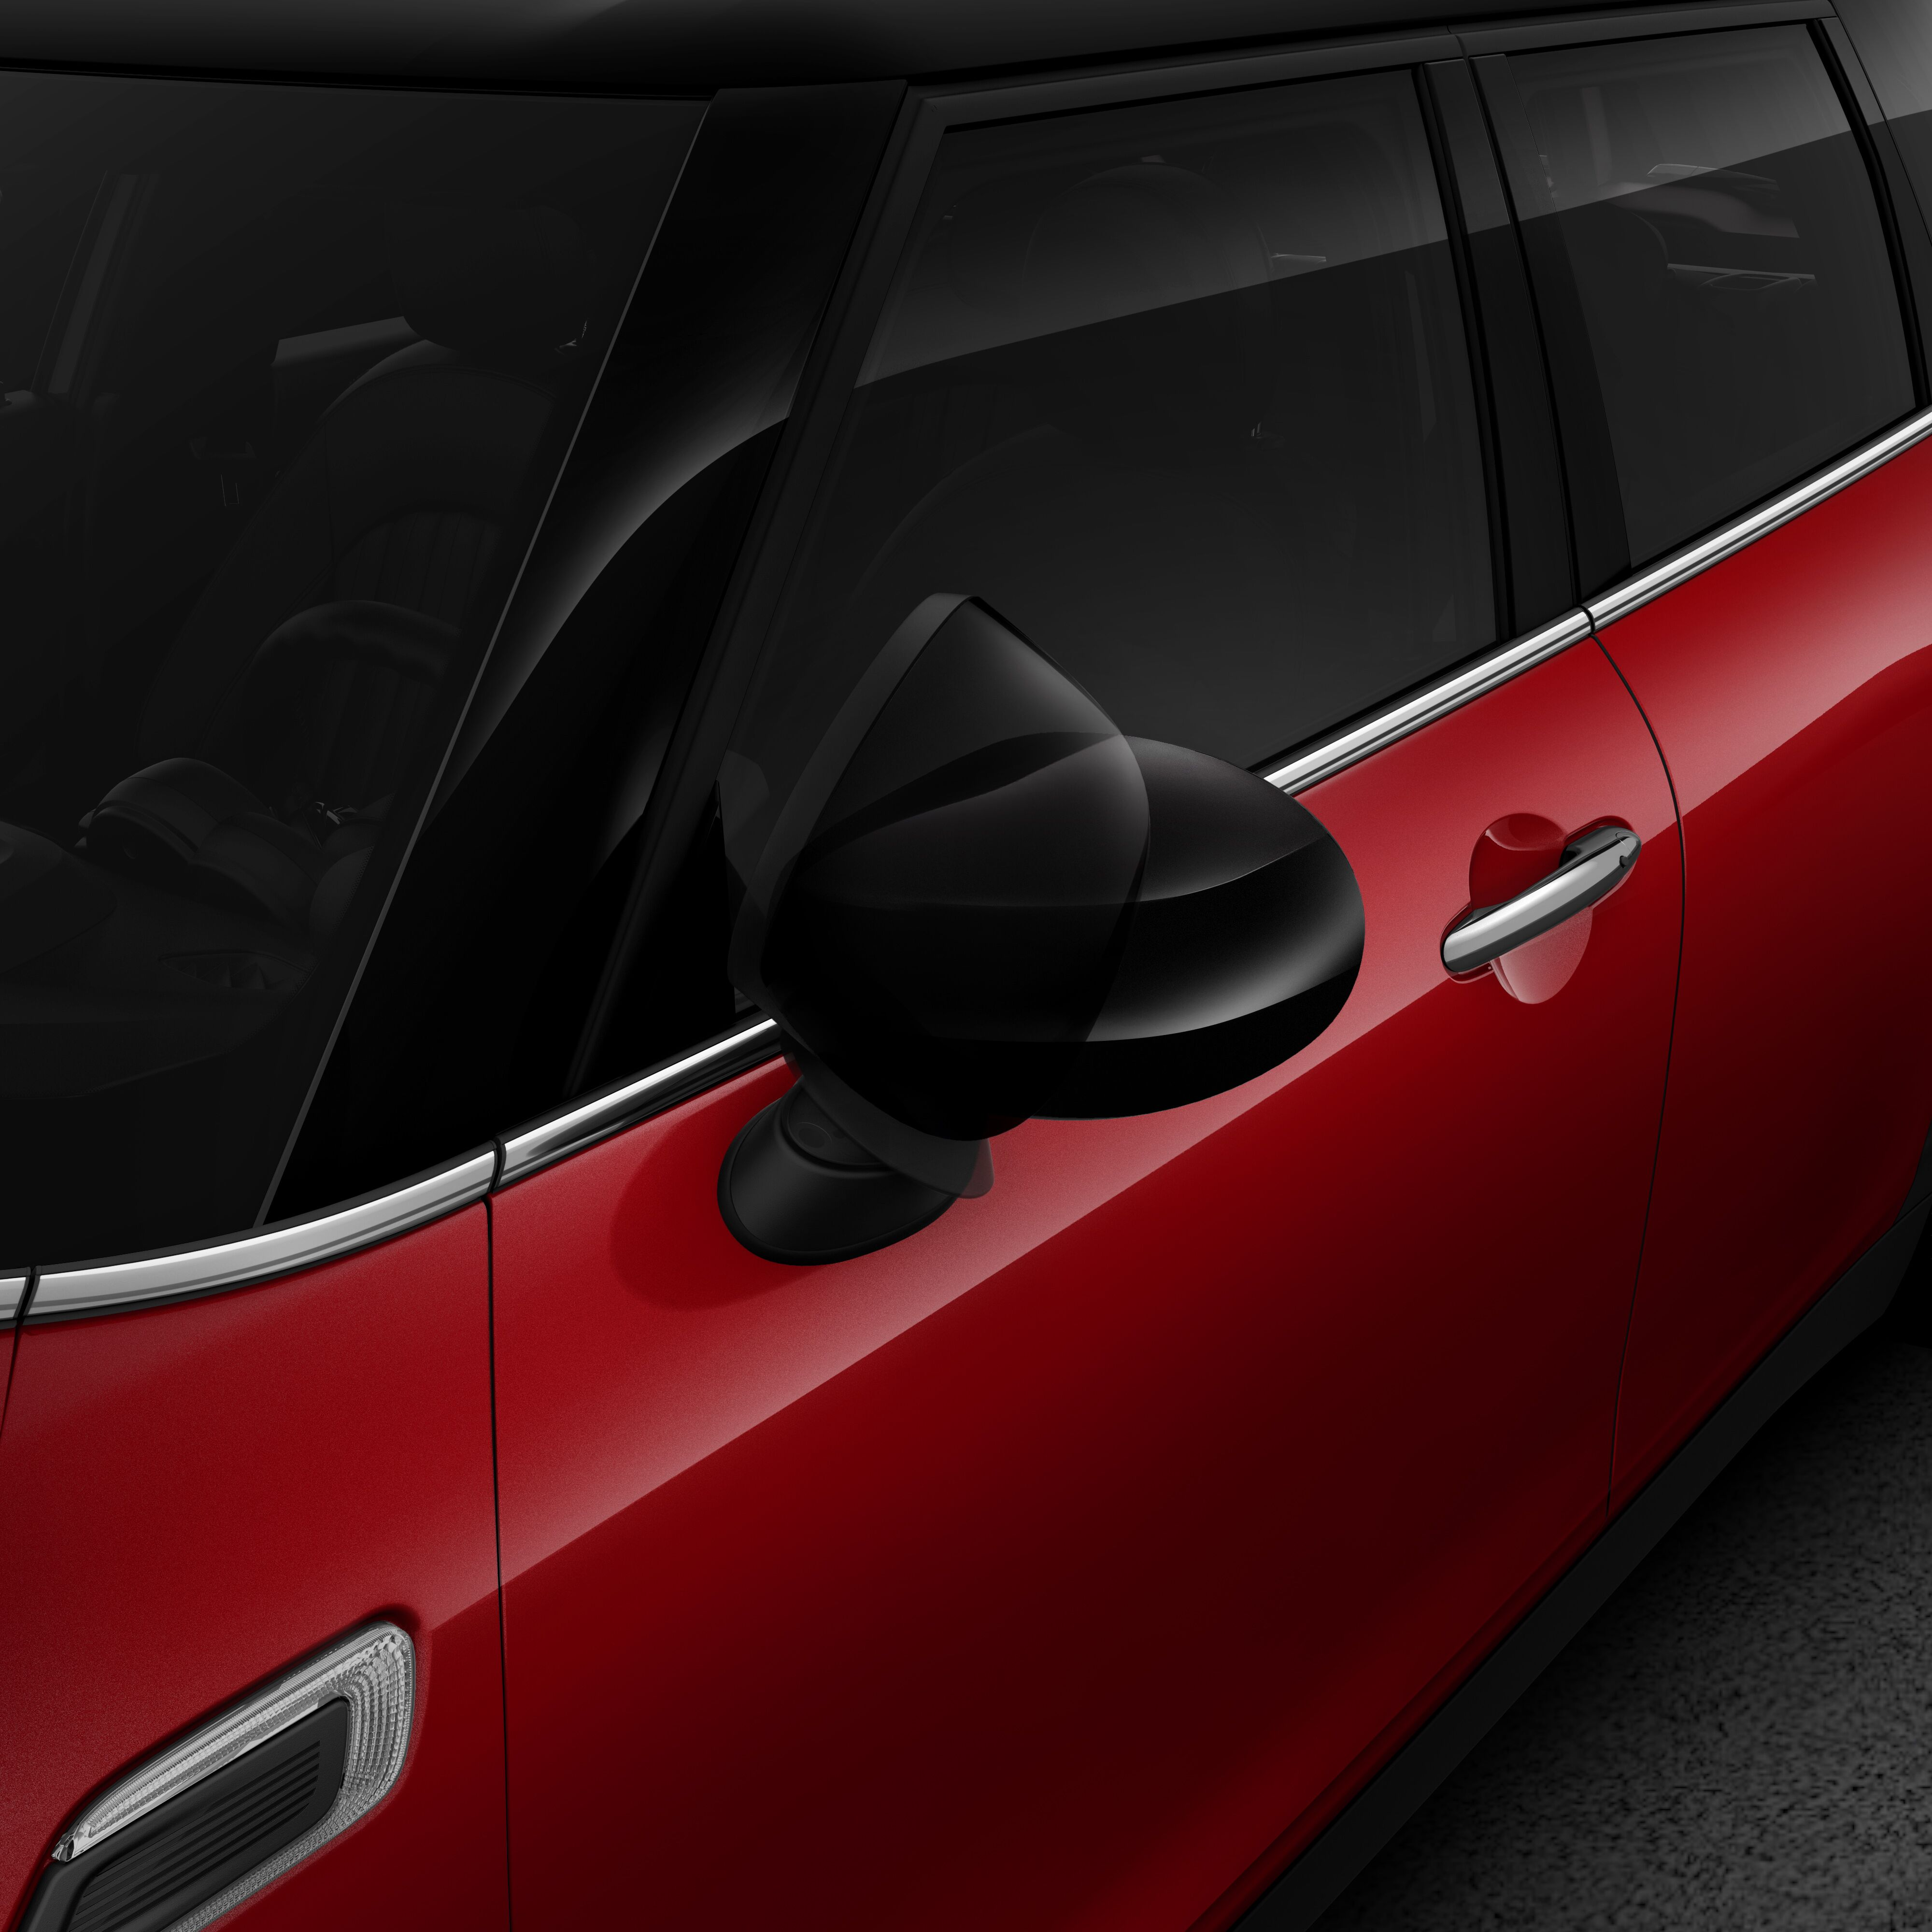 Exterior mirror package (electrically folding and heated)